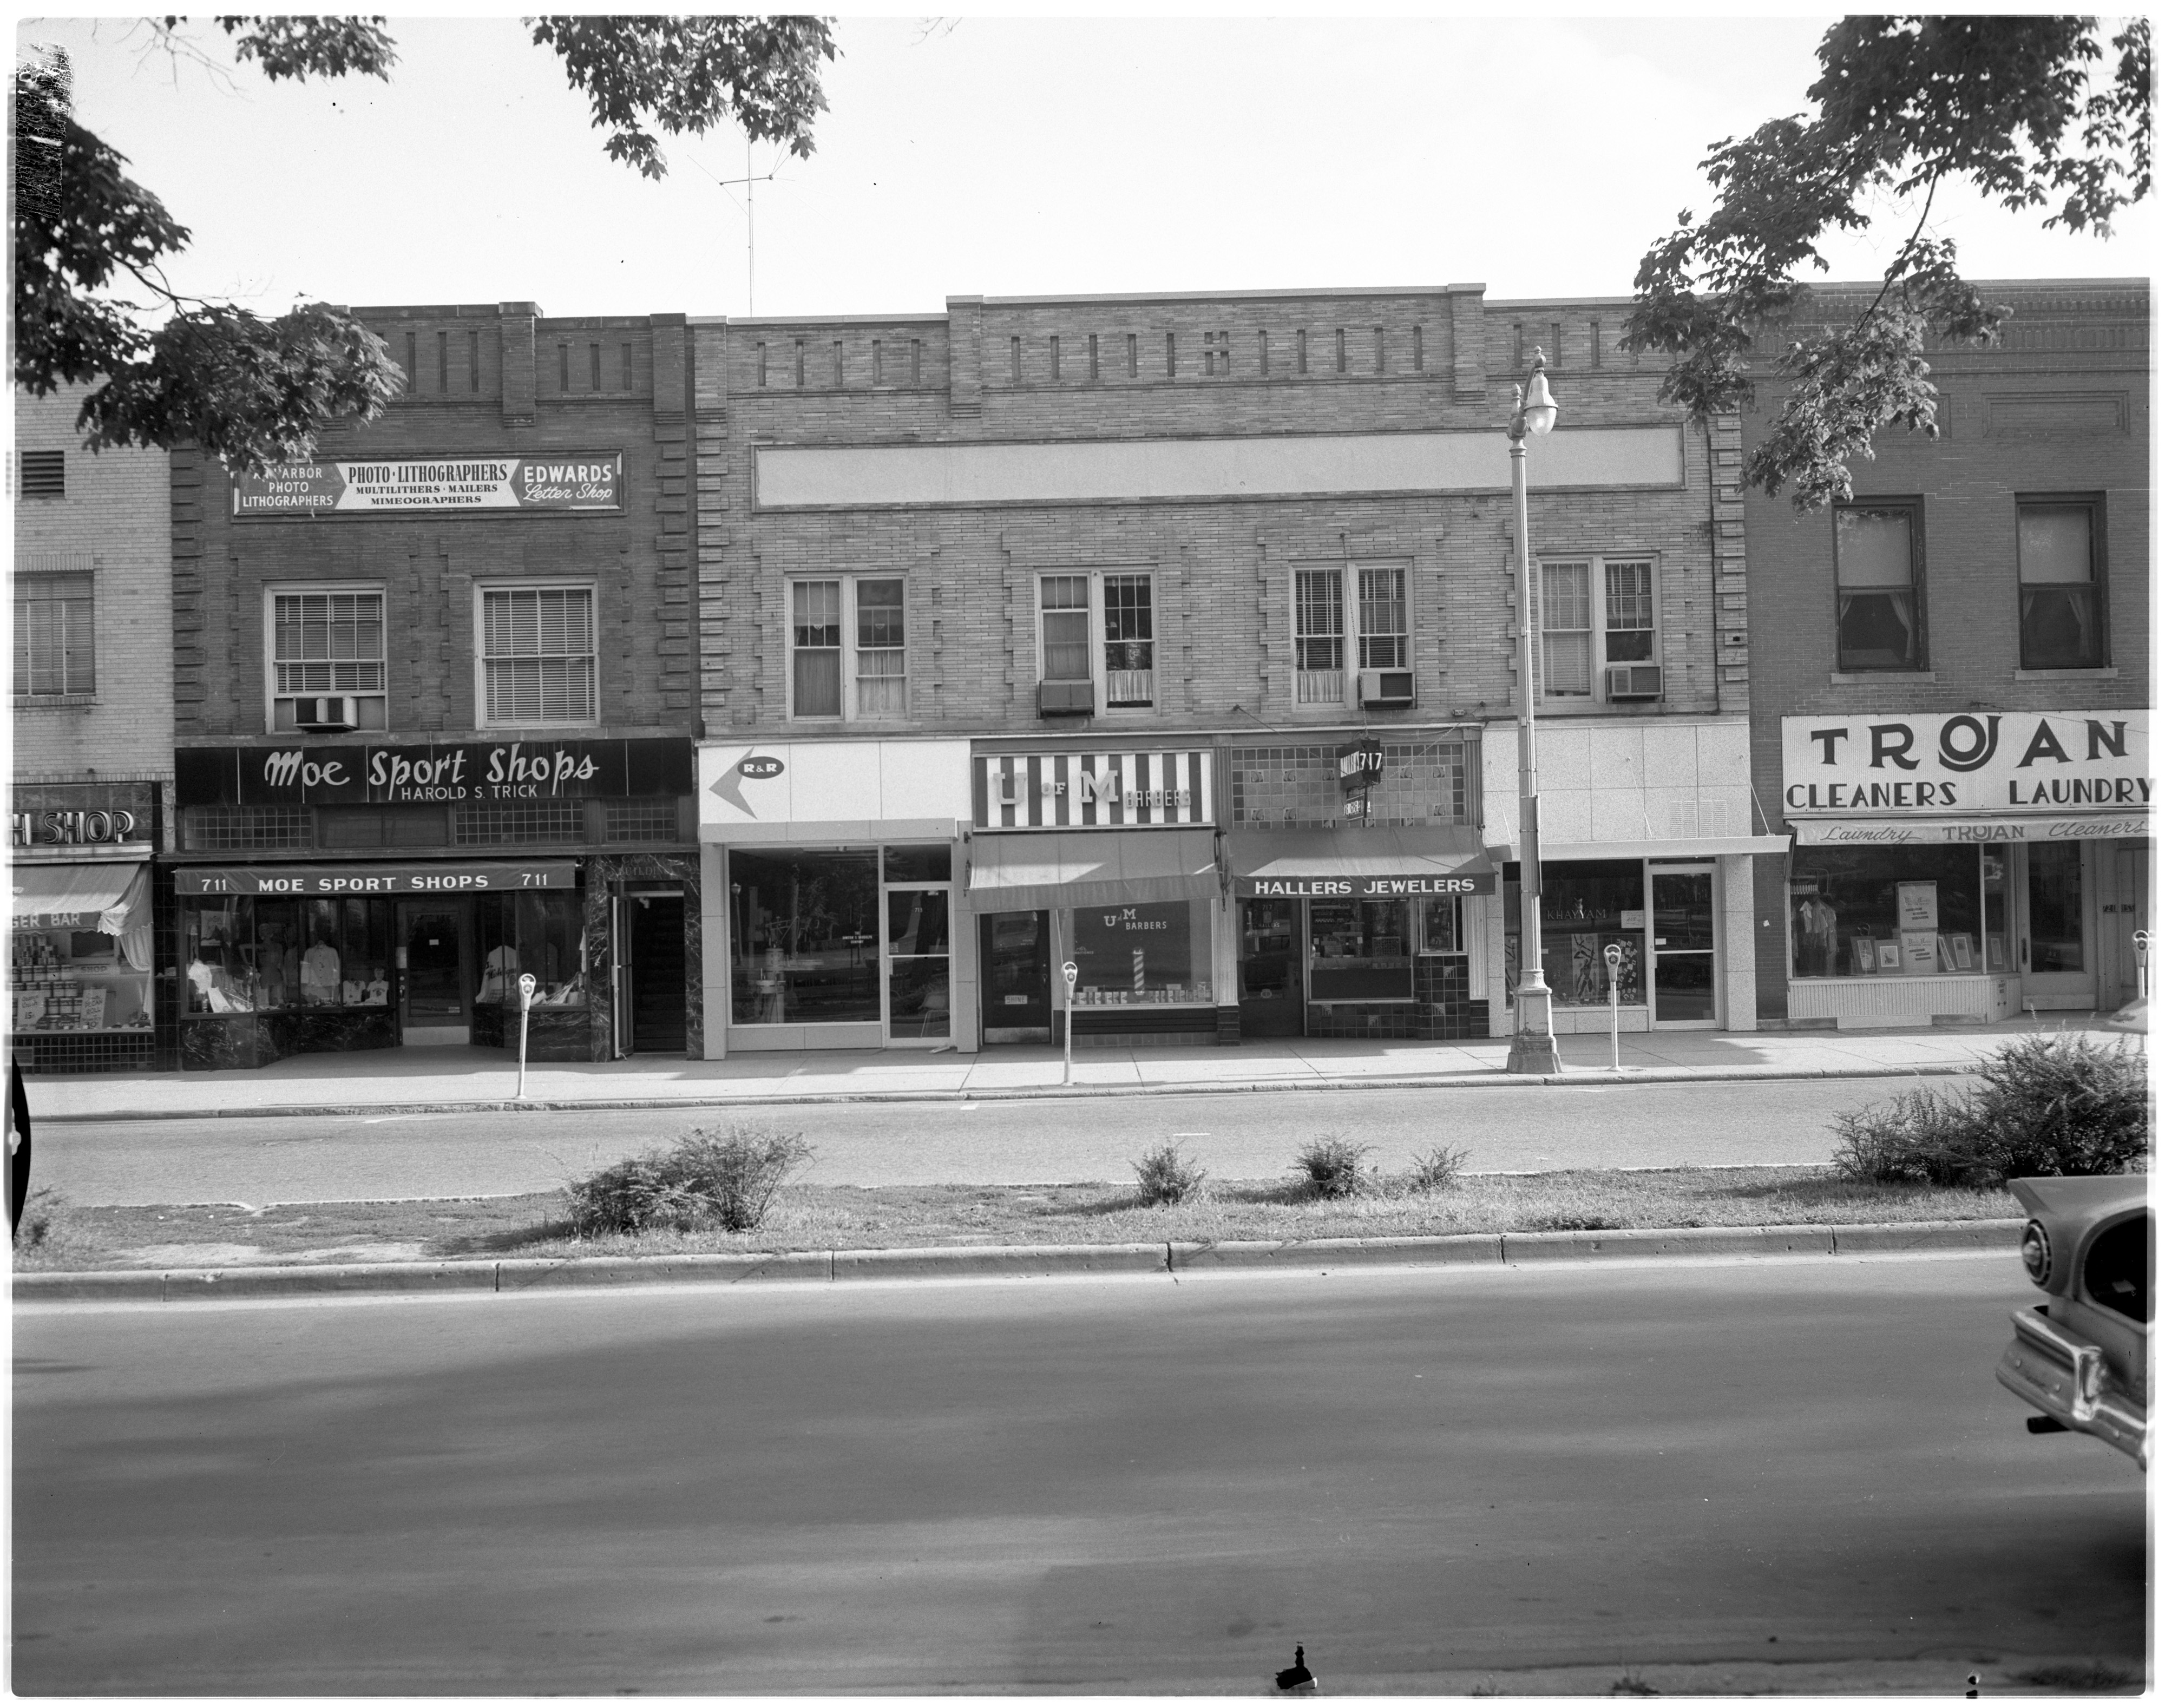 Shops along North University Ave image